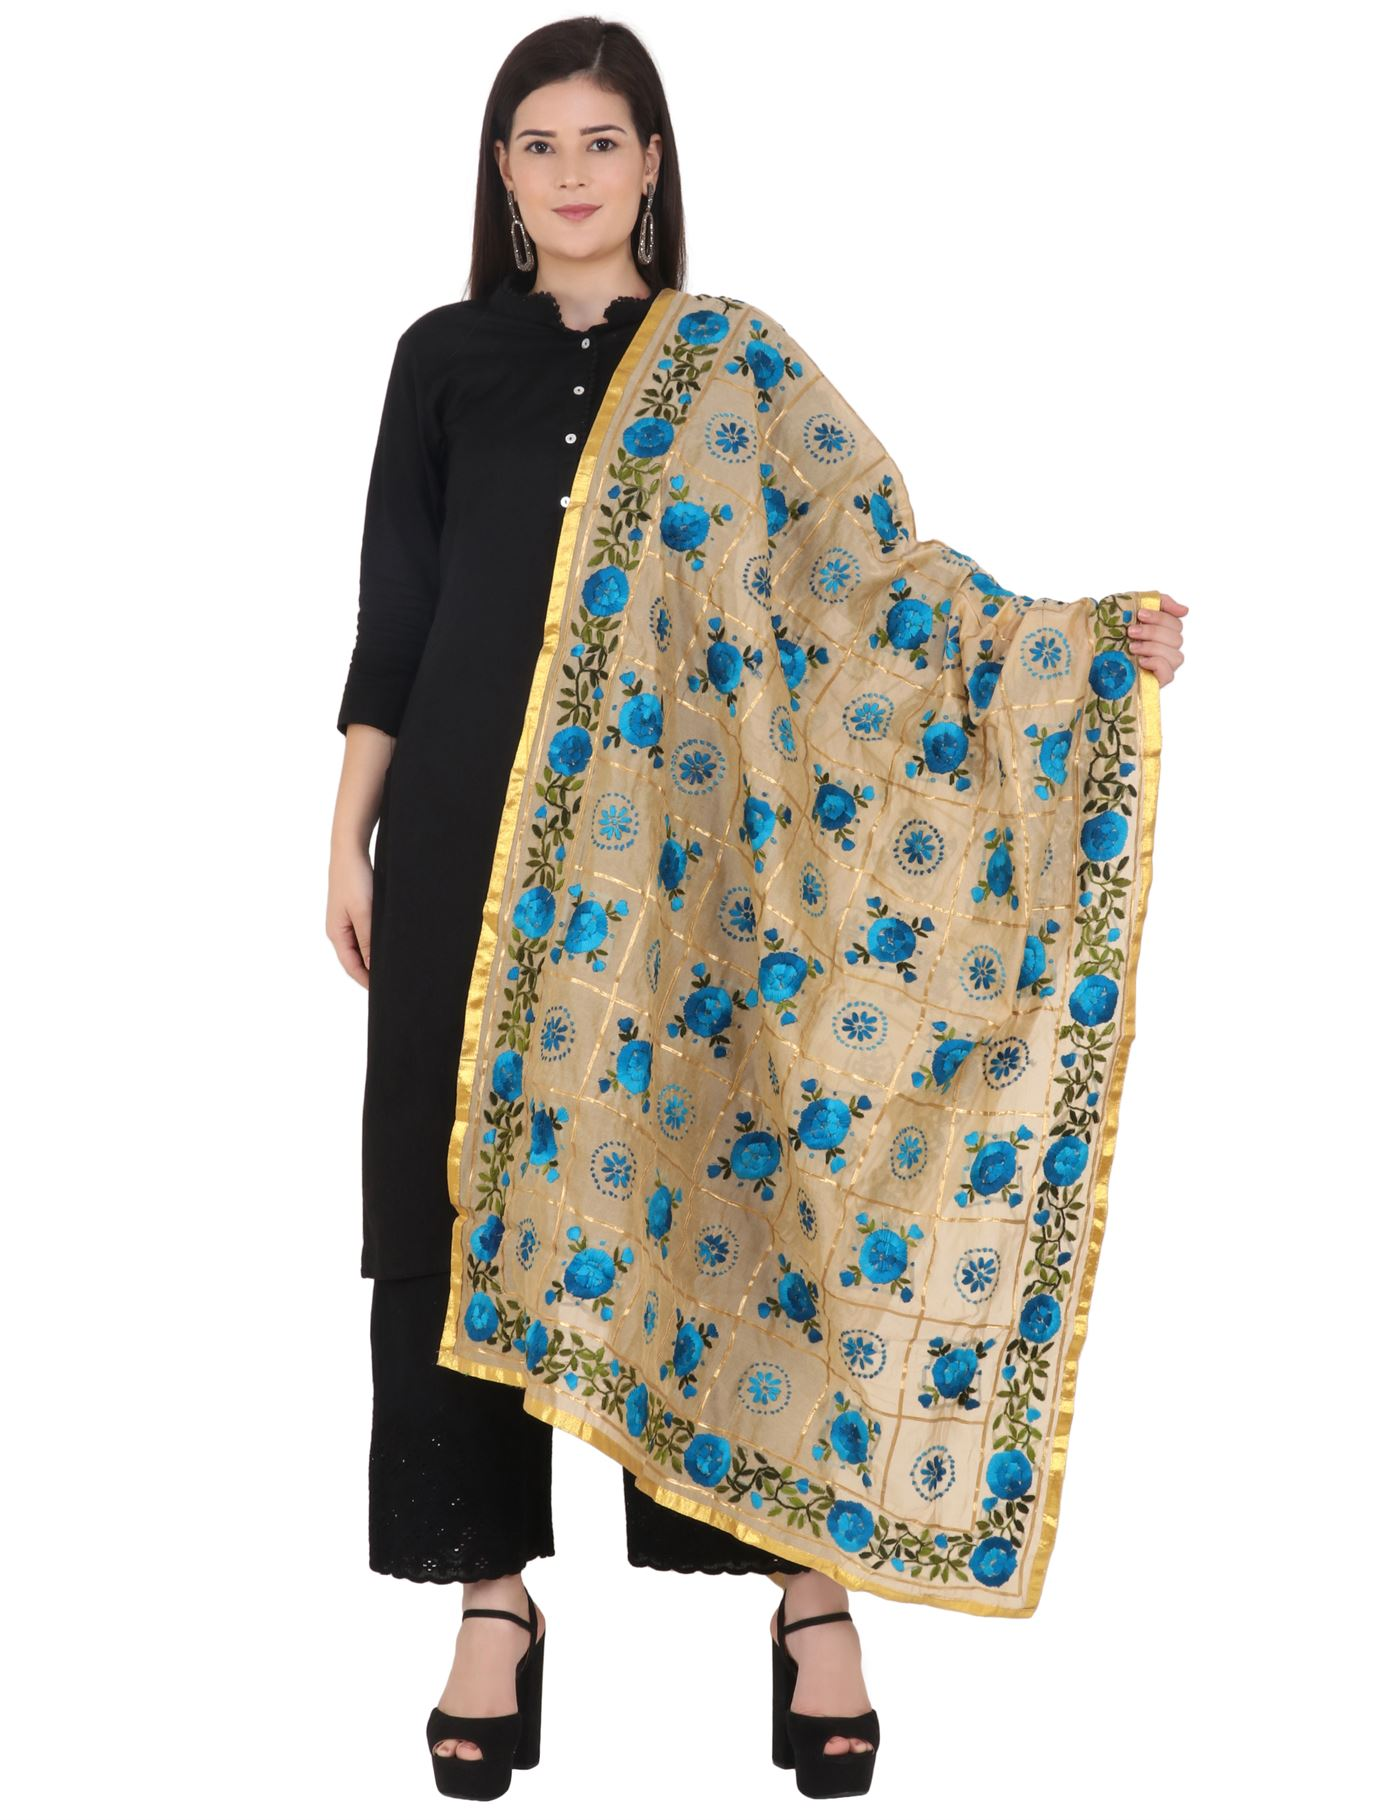 Moda Chales Blue Floral Embroidered Dupatta with Golden Border